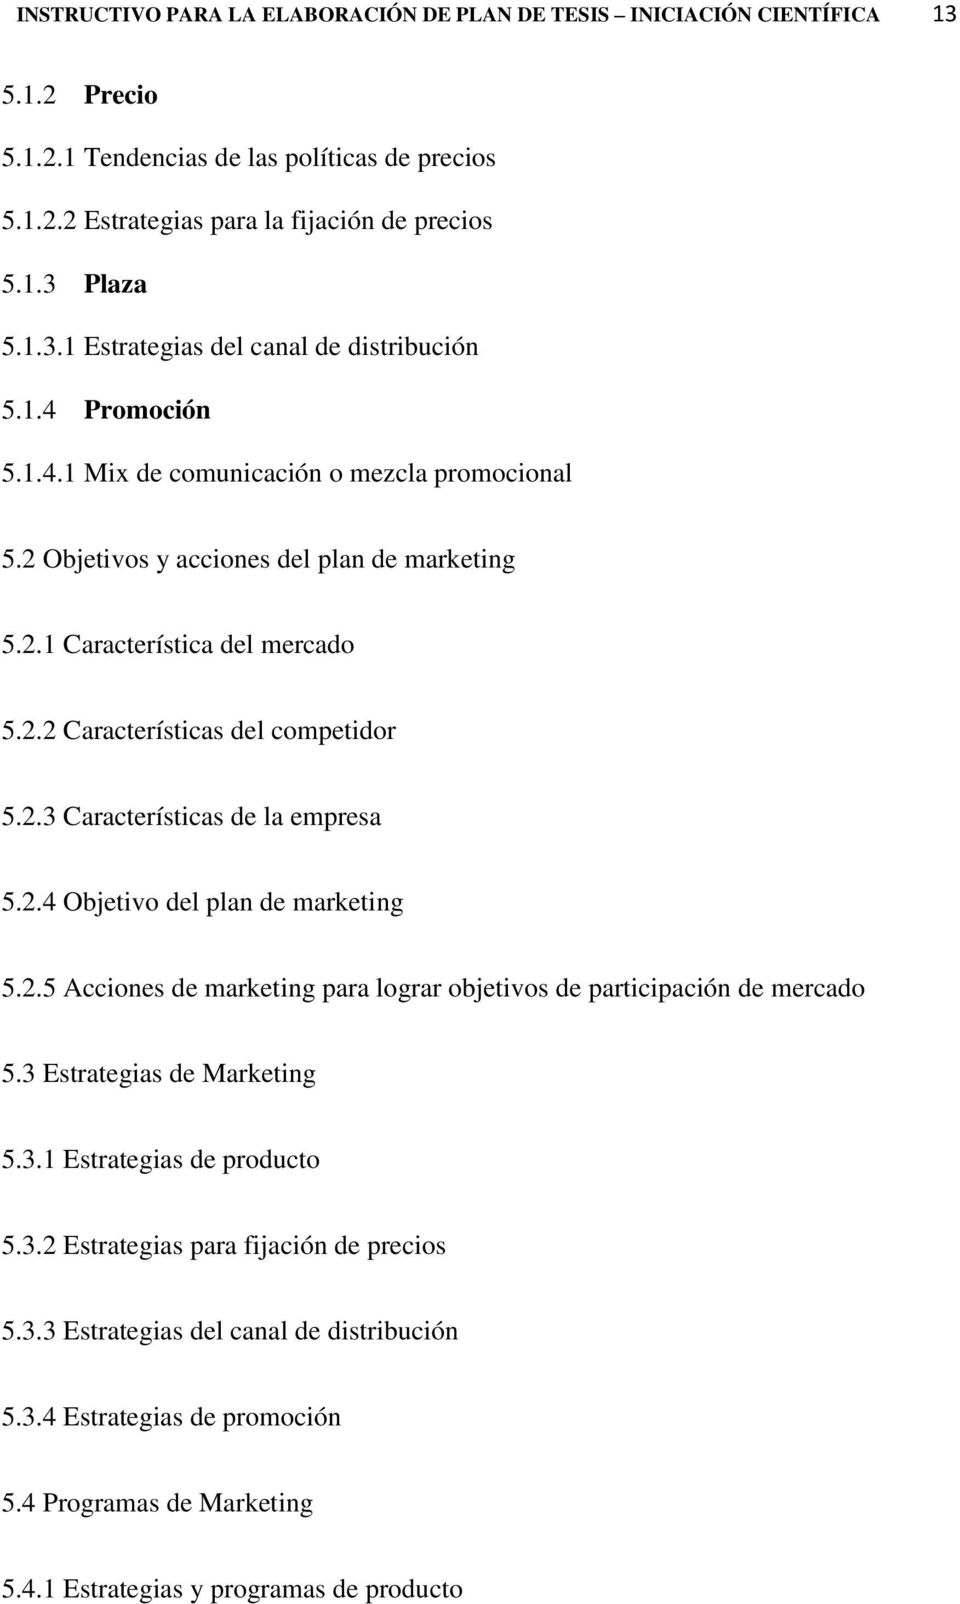 2.4 Objetivo del plan de marketing 5.2.5 Acciones de marketing para lograr objetivos de participación de mercado 5.3 Estrategias de Marketing 5.3.1 Estrategias de producto 5.3.2 Estrategias para fijación de precios 5.